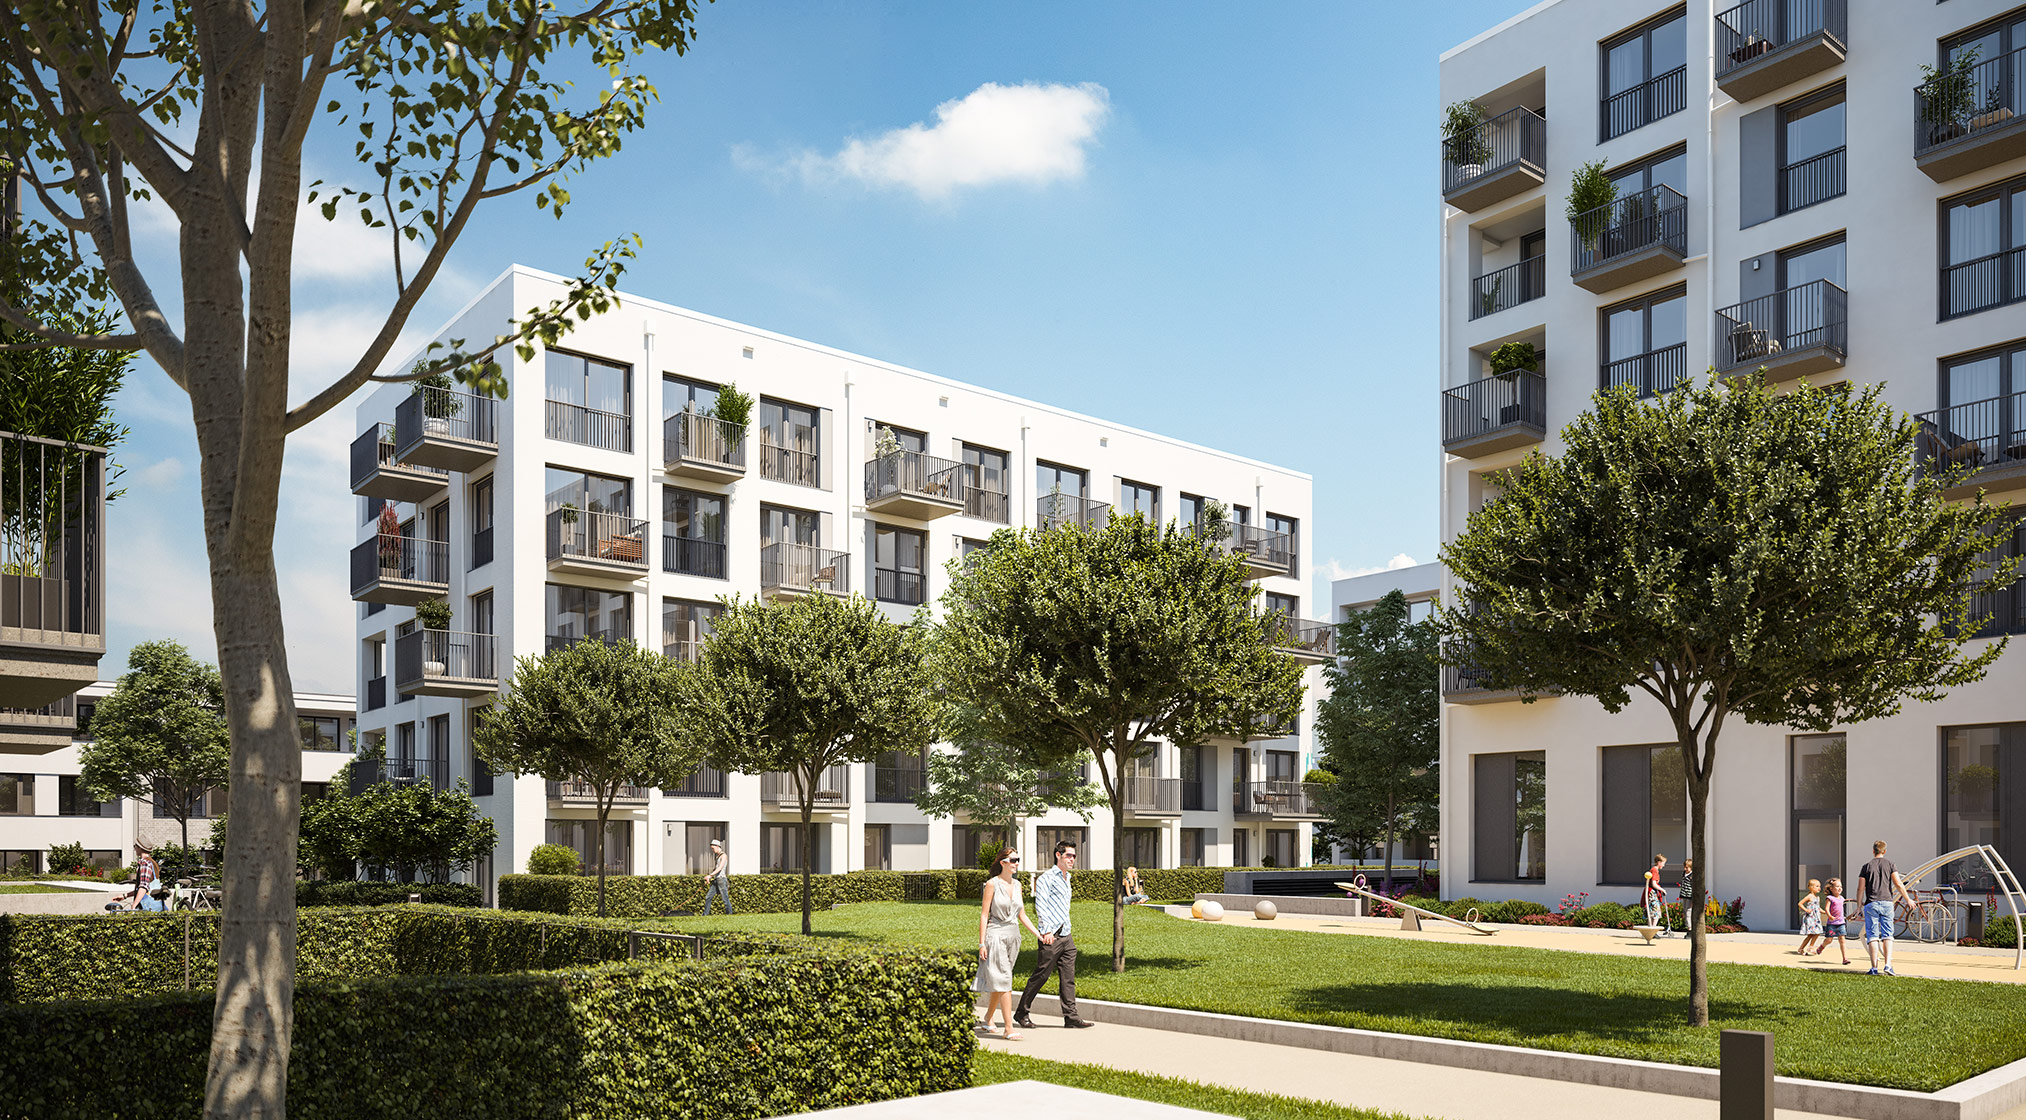 Property Alexisquartier - Wohnen an der Allee - project details - Illustration 1